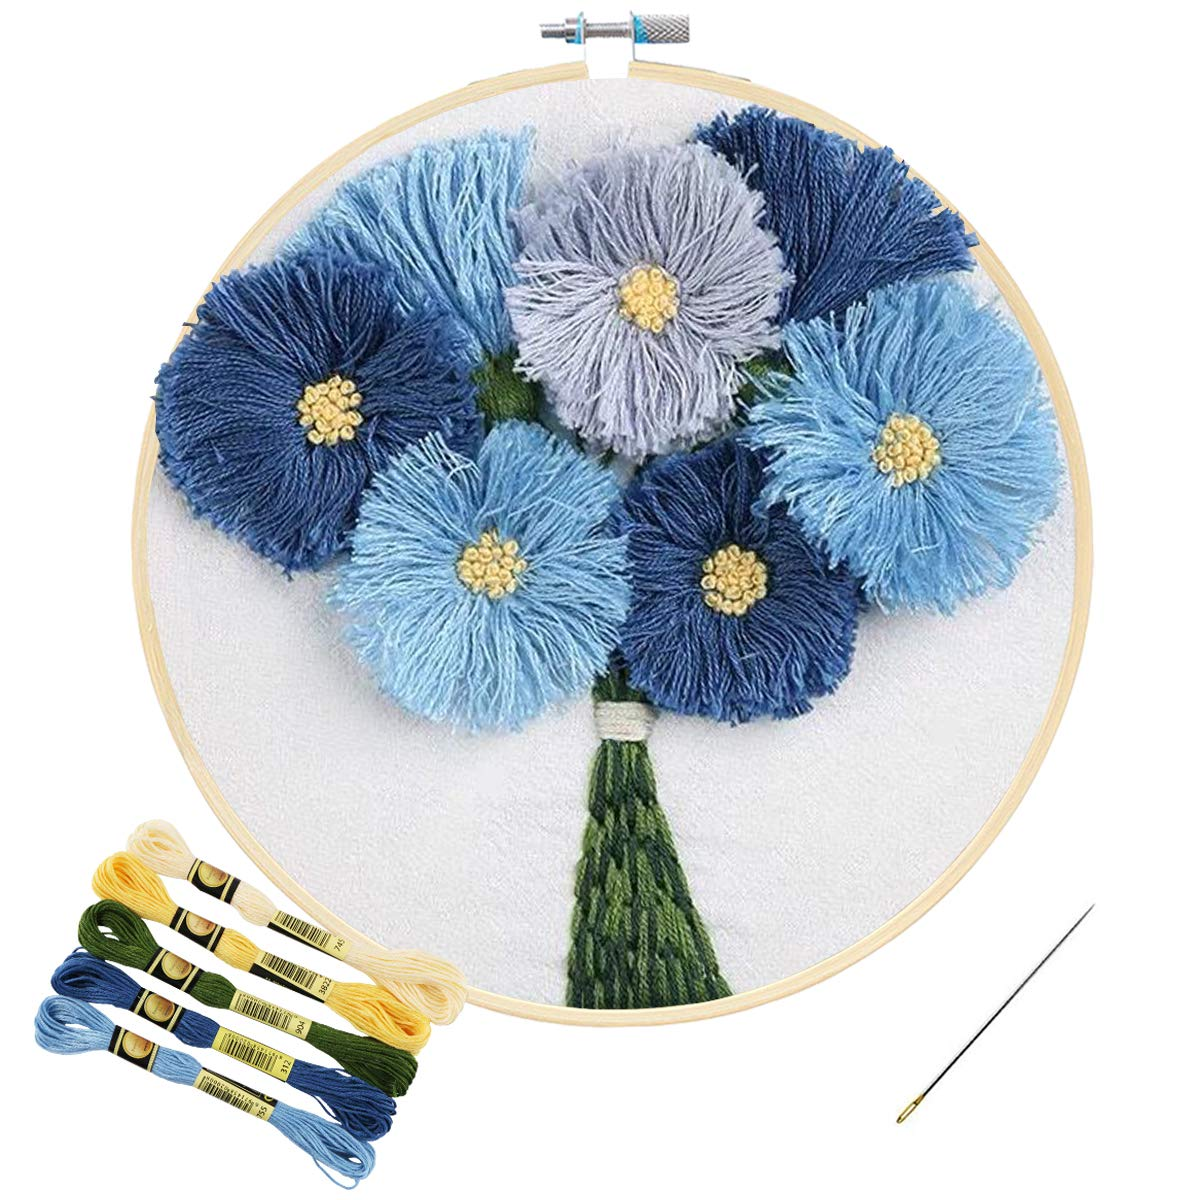 Kissbuty Cross Stitch Kit Including Clear Organza Stamped Embroidery Cloth with Pattern,Plastic Embroidery Hoop,Color Threads and Tools Dandelion Full Range of Embroidery Starter Kit with Pattern